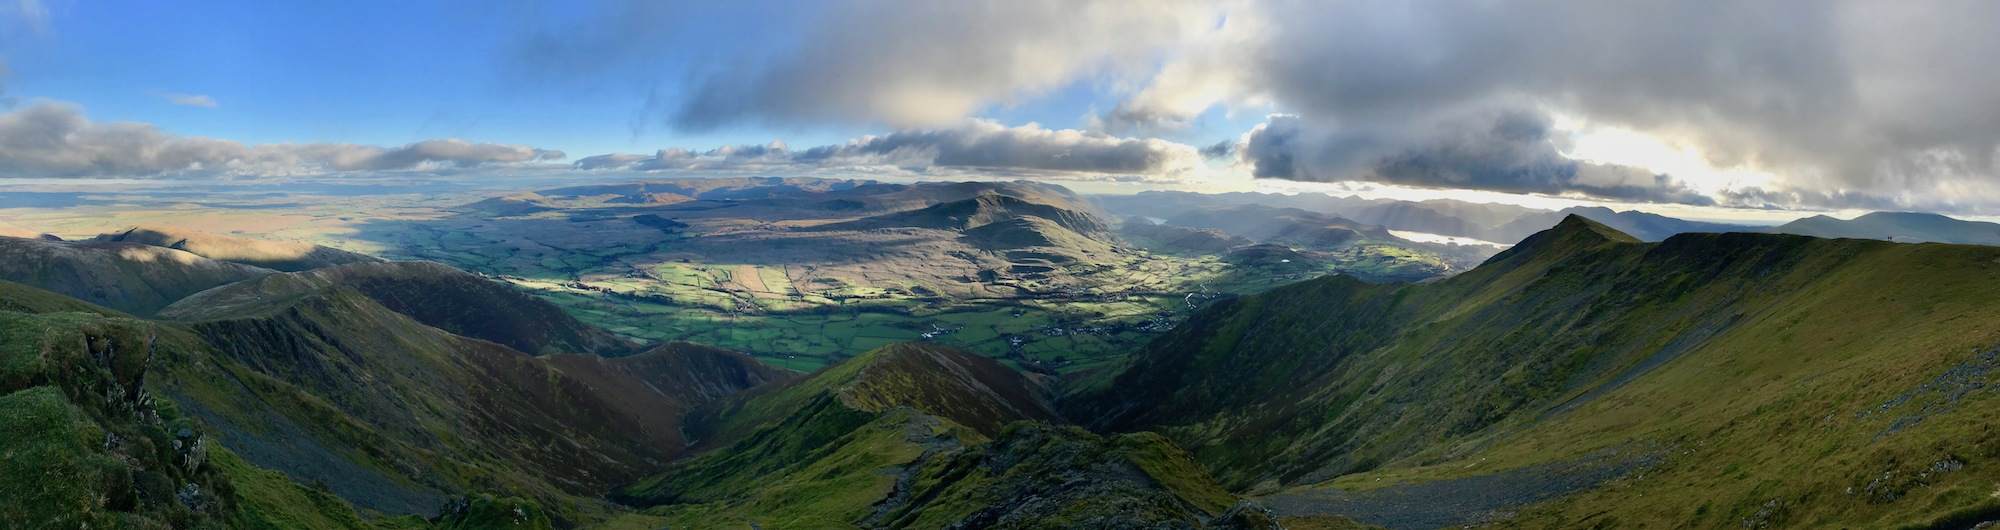 Views down the southern slopes of Blencathra